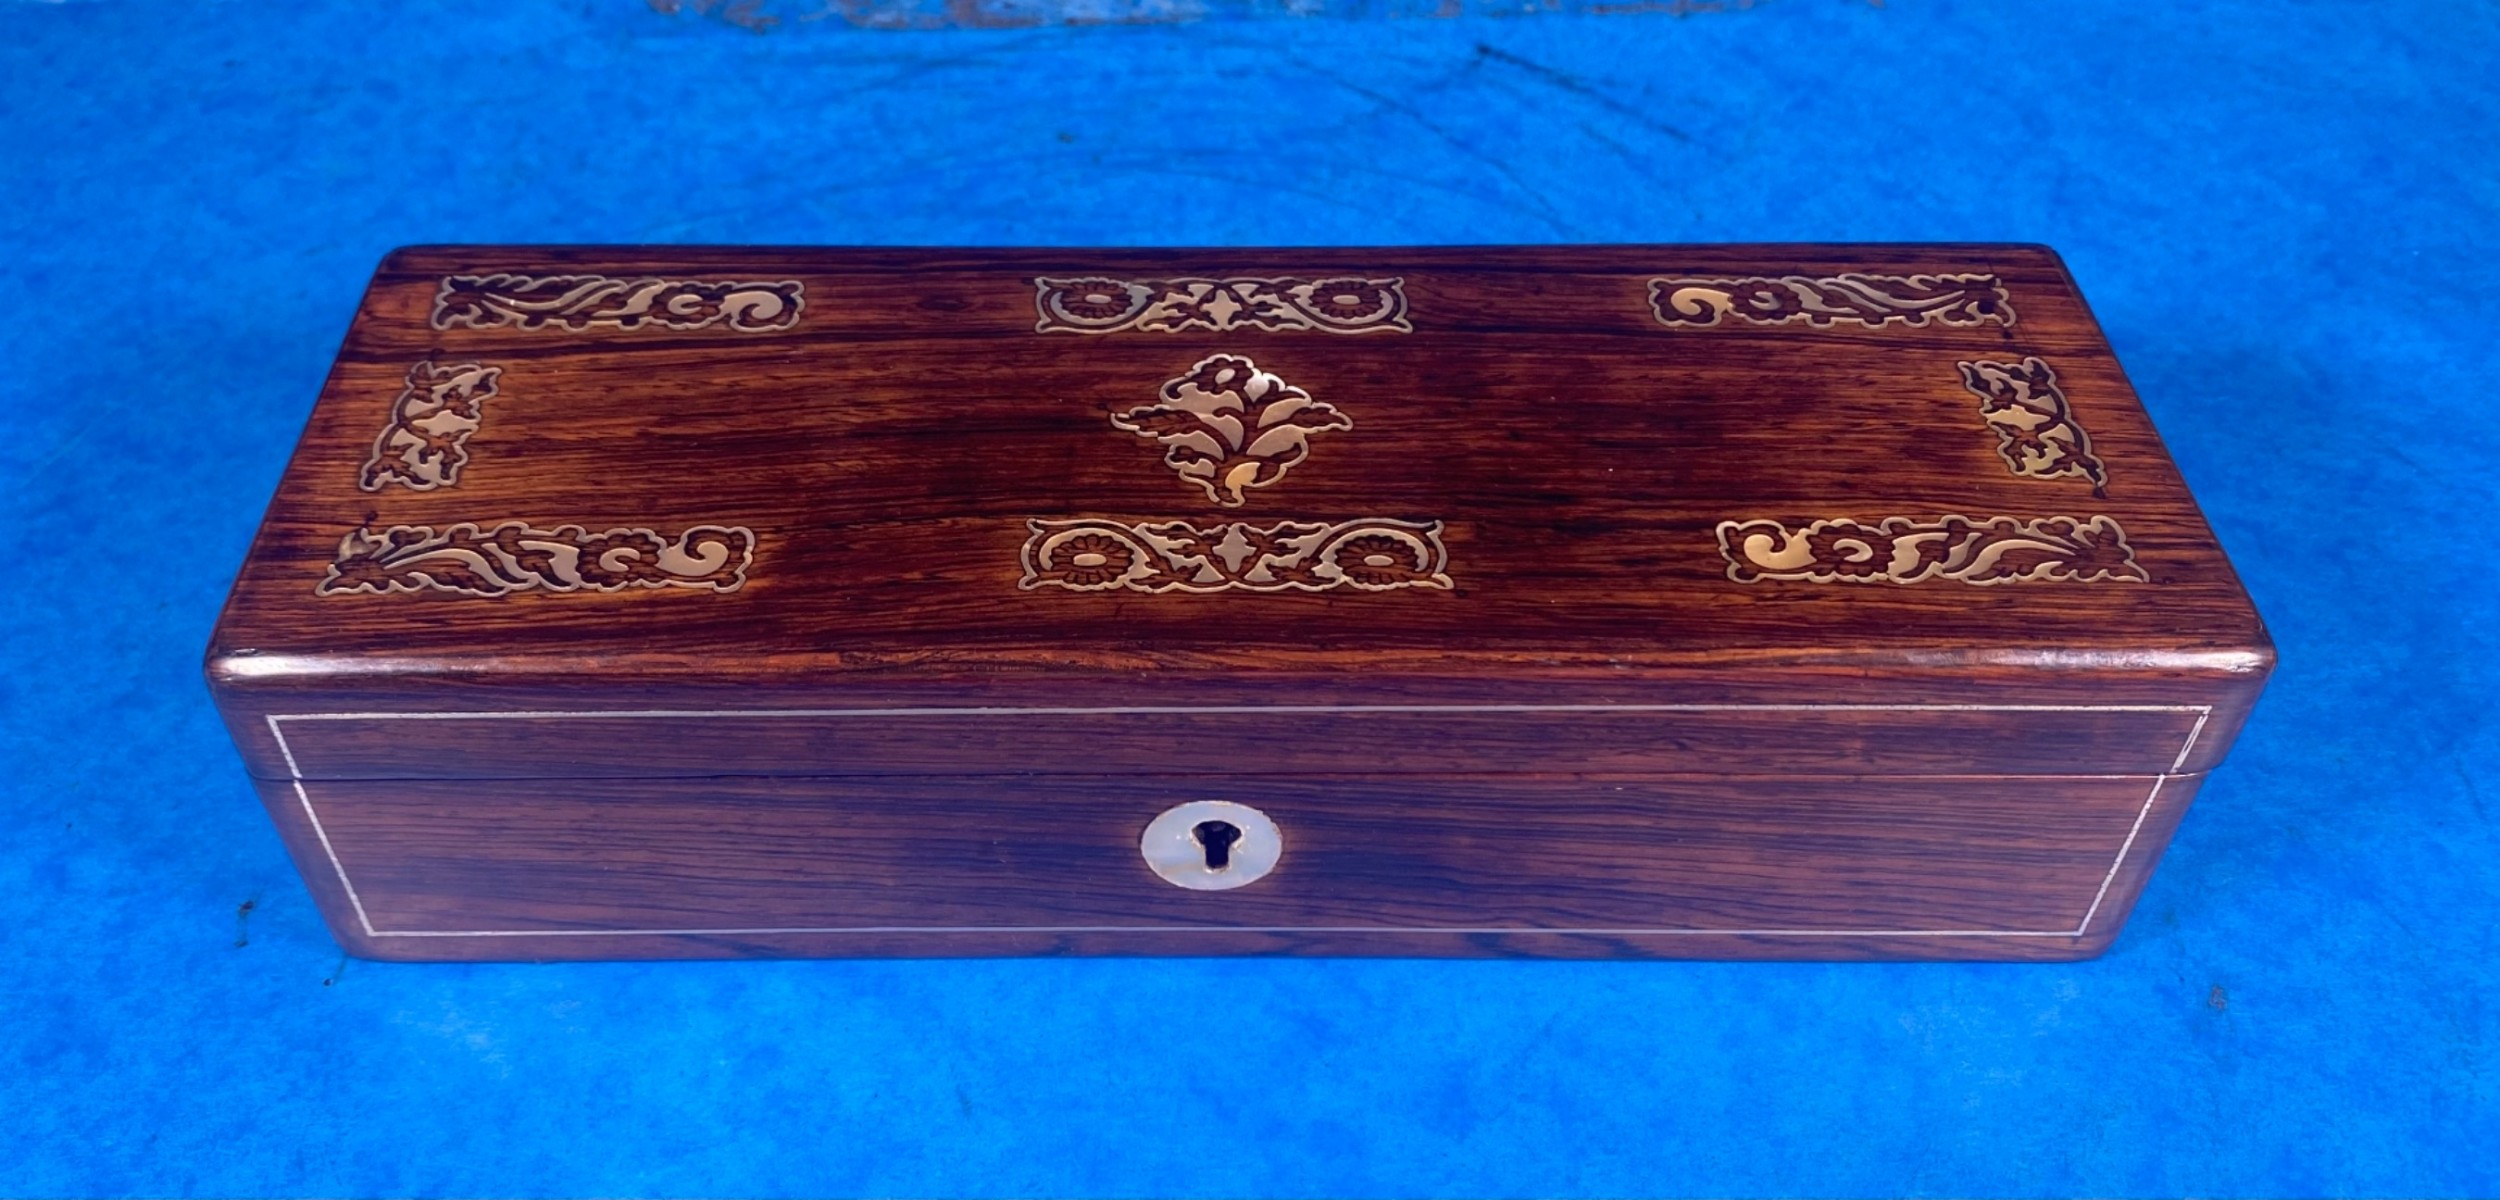 william iv mother of pearl inlaid rosewood glove box